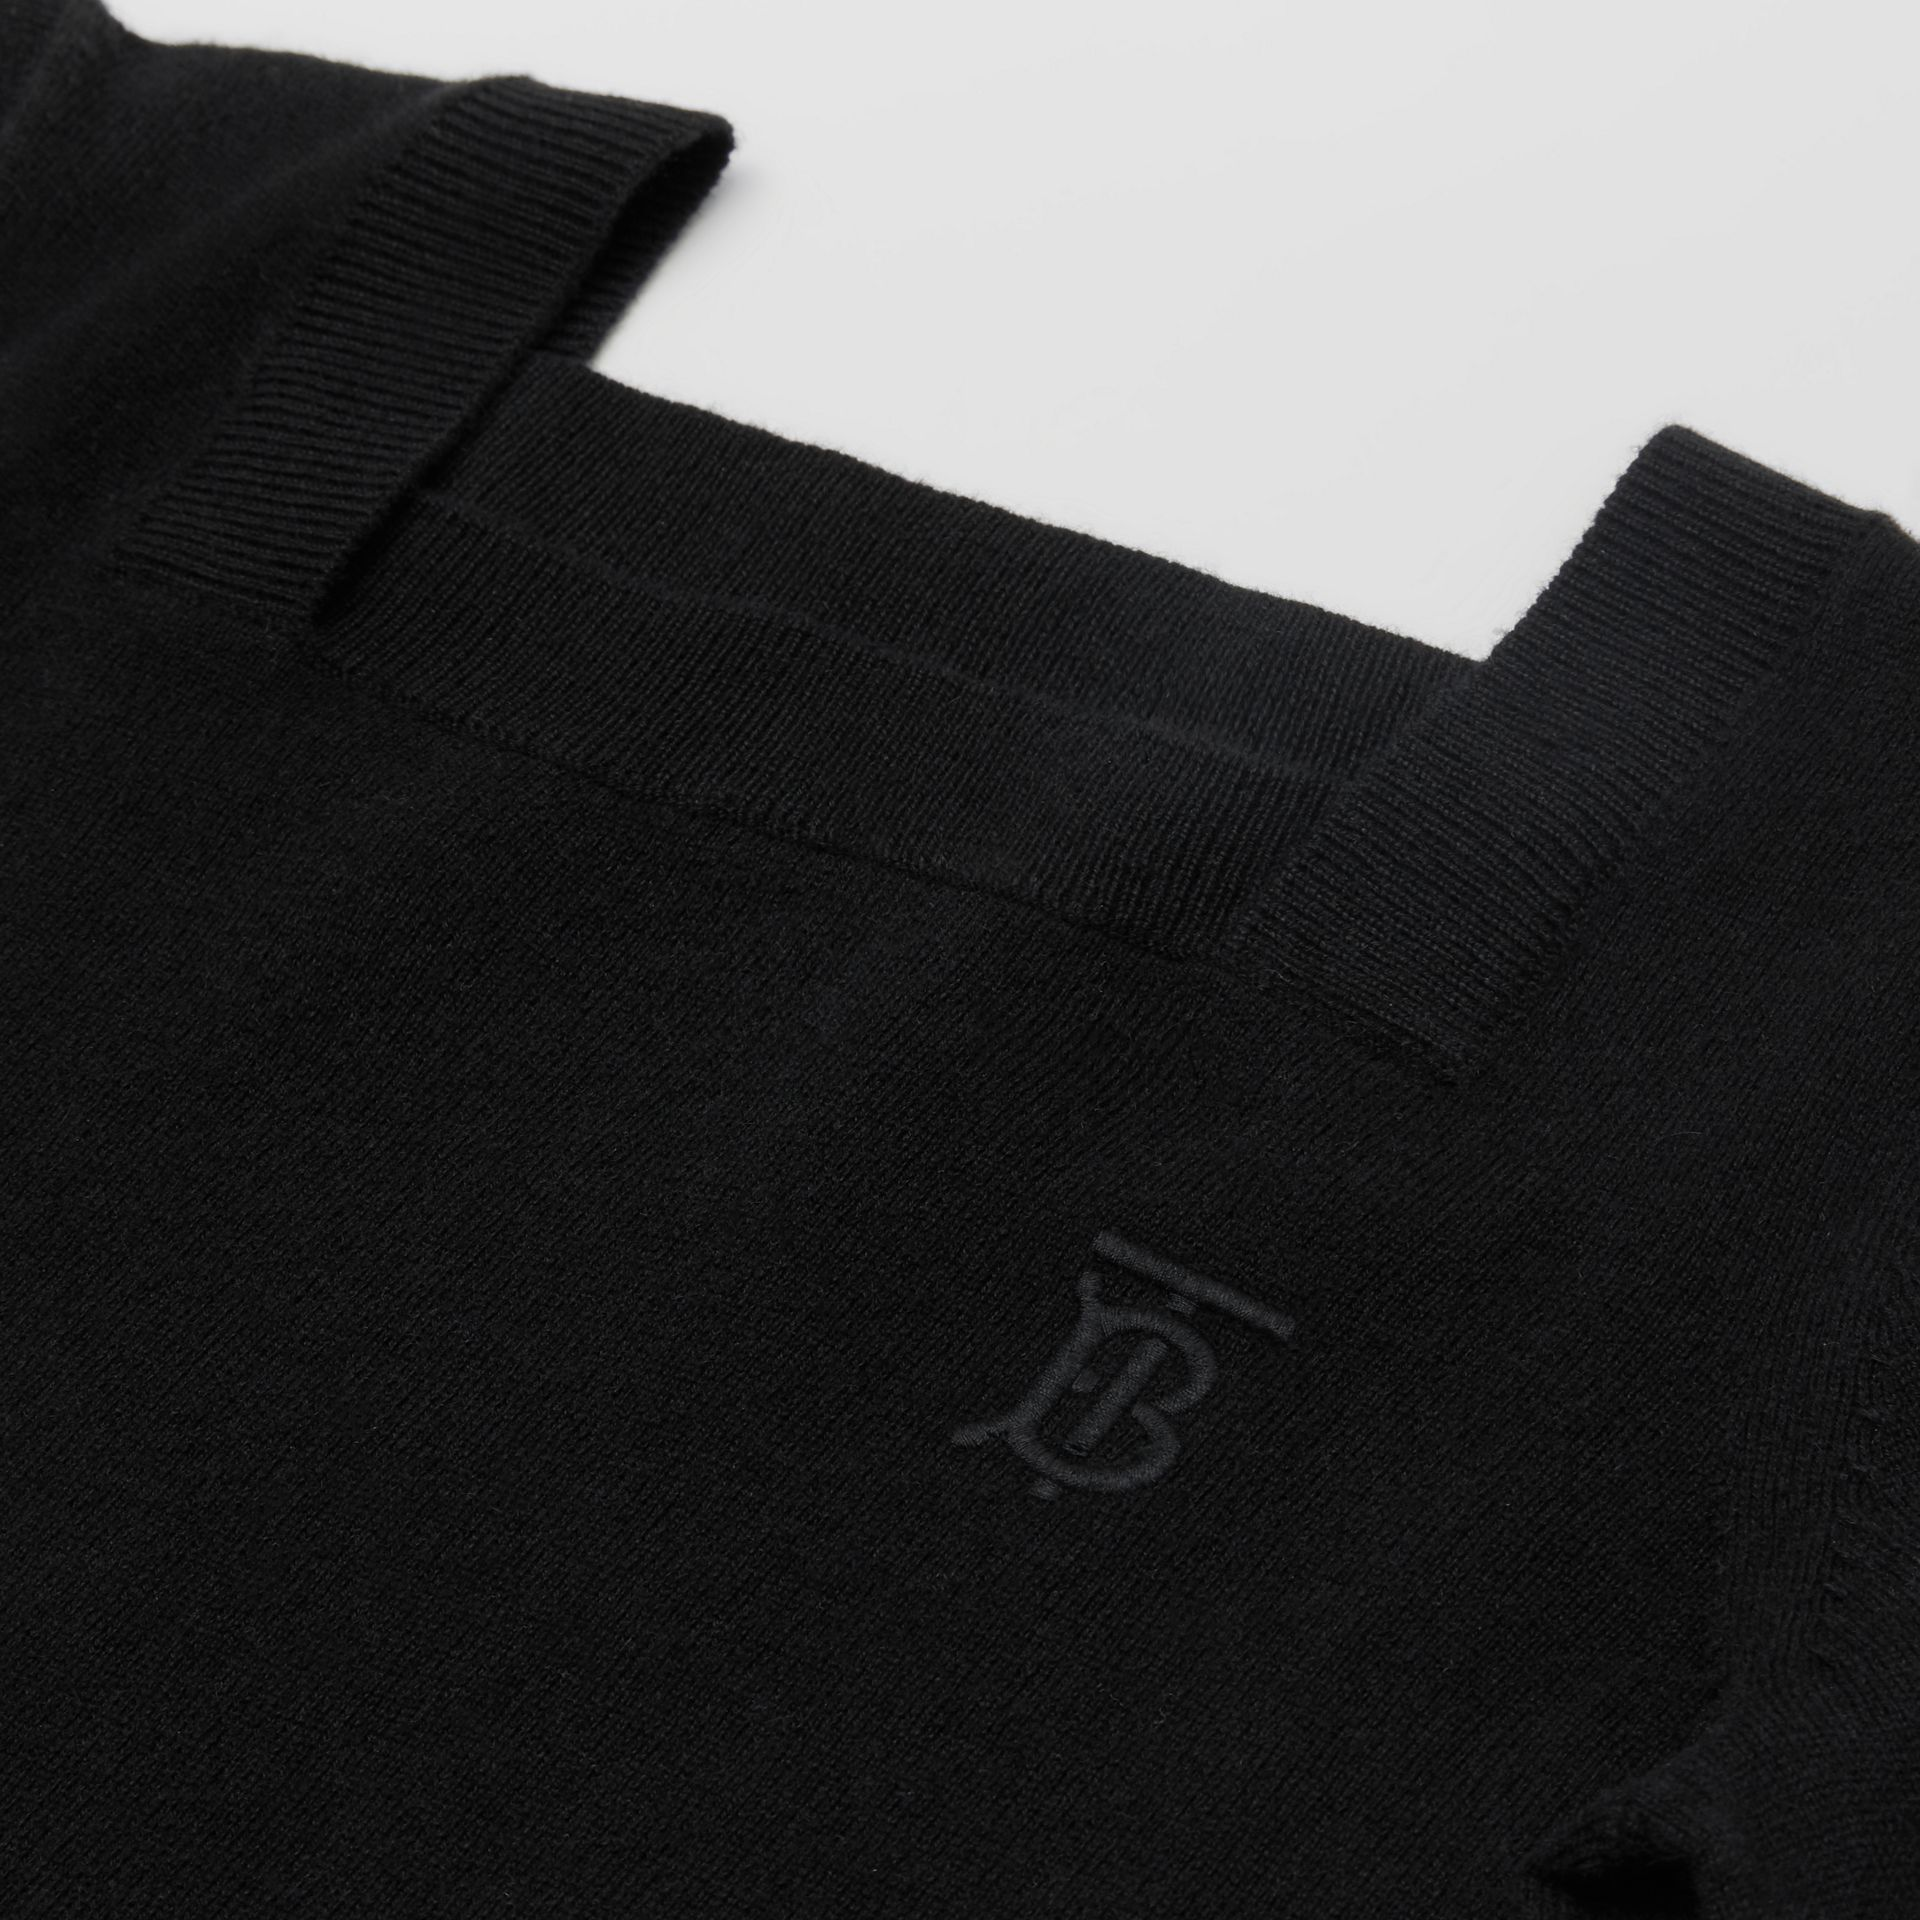 Monogram Motif Cashmere Sweater Dress in Black | Burberry - gallery image 1